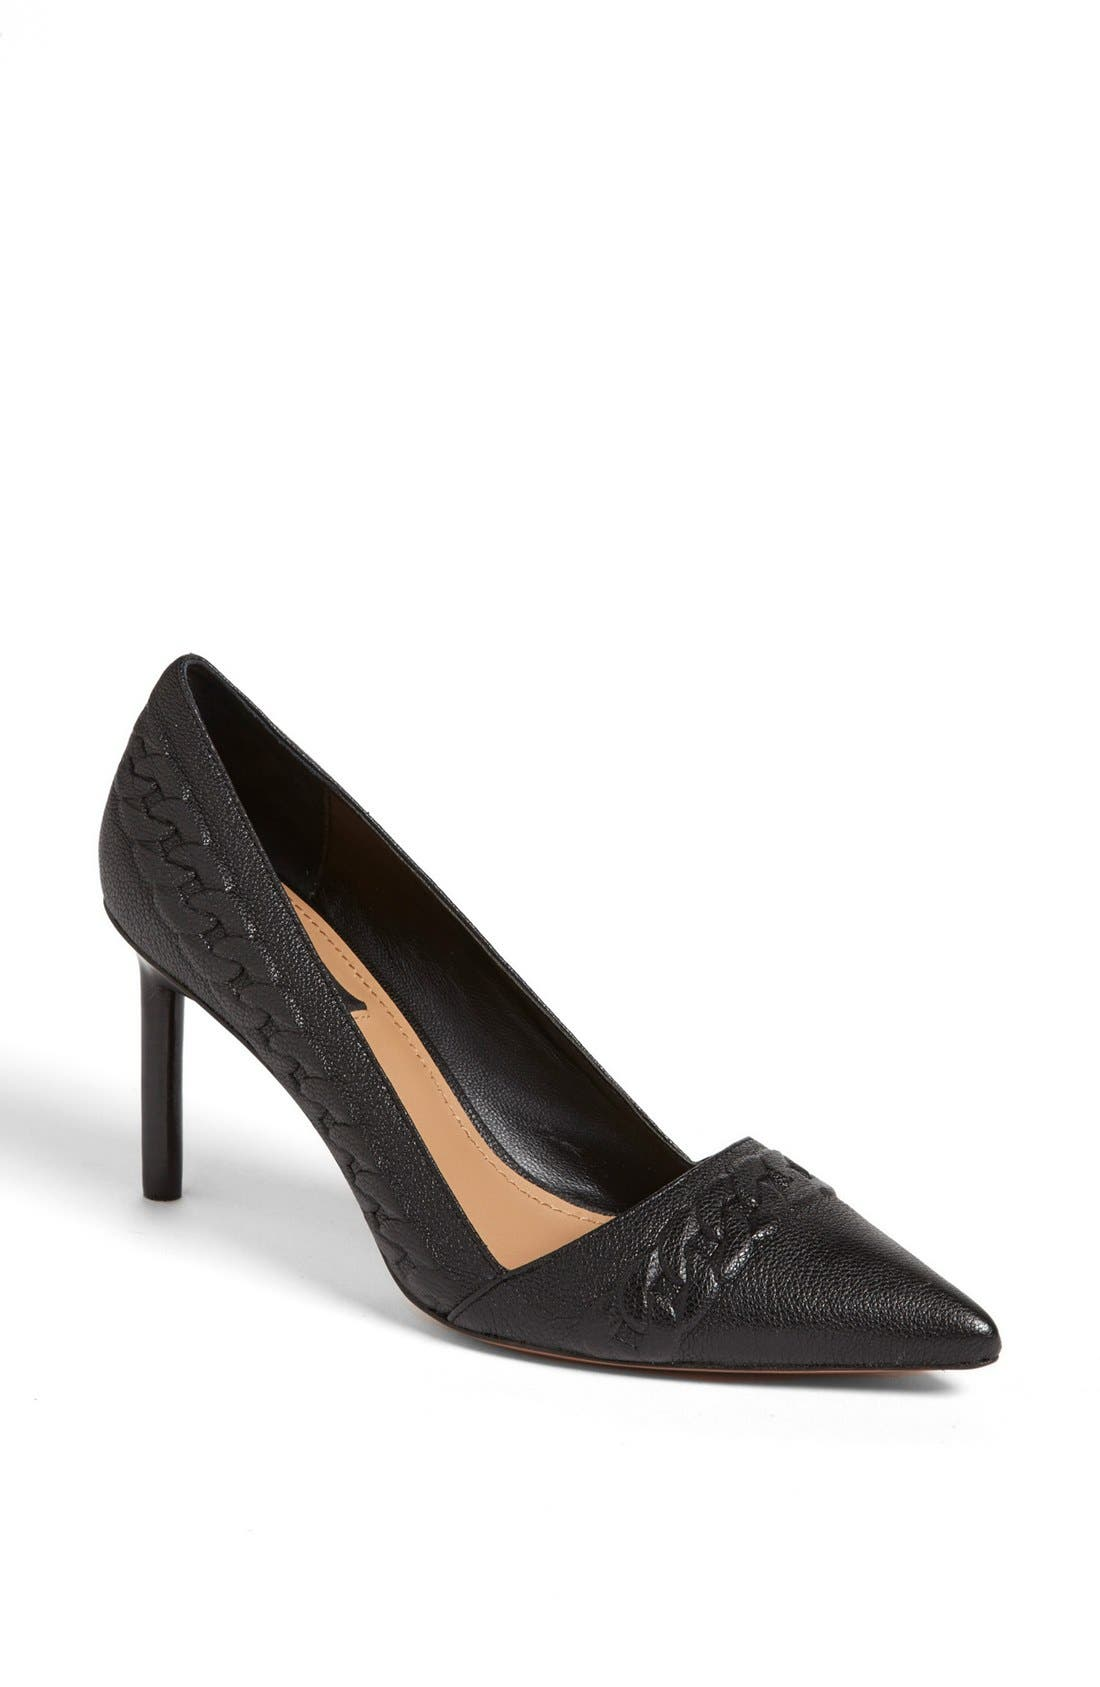 Main Image - Rachel Zoe 'Kenley' Leather Pump